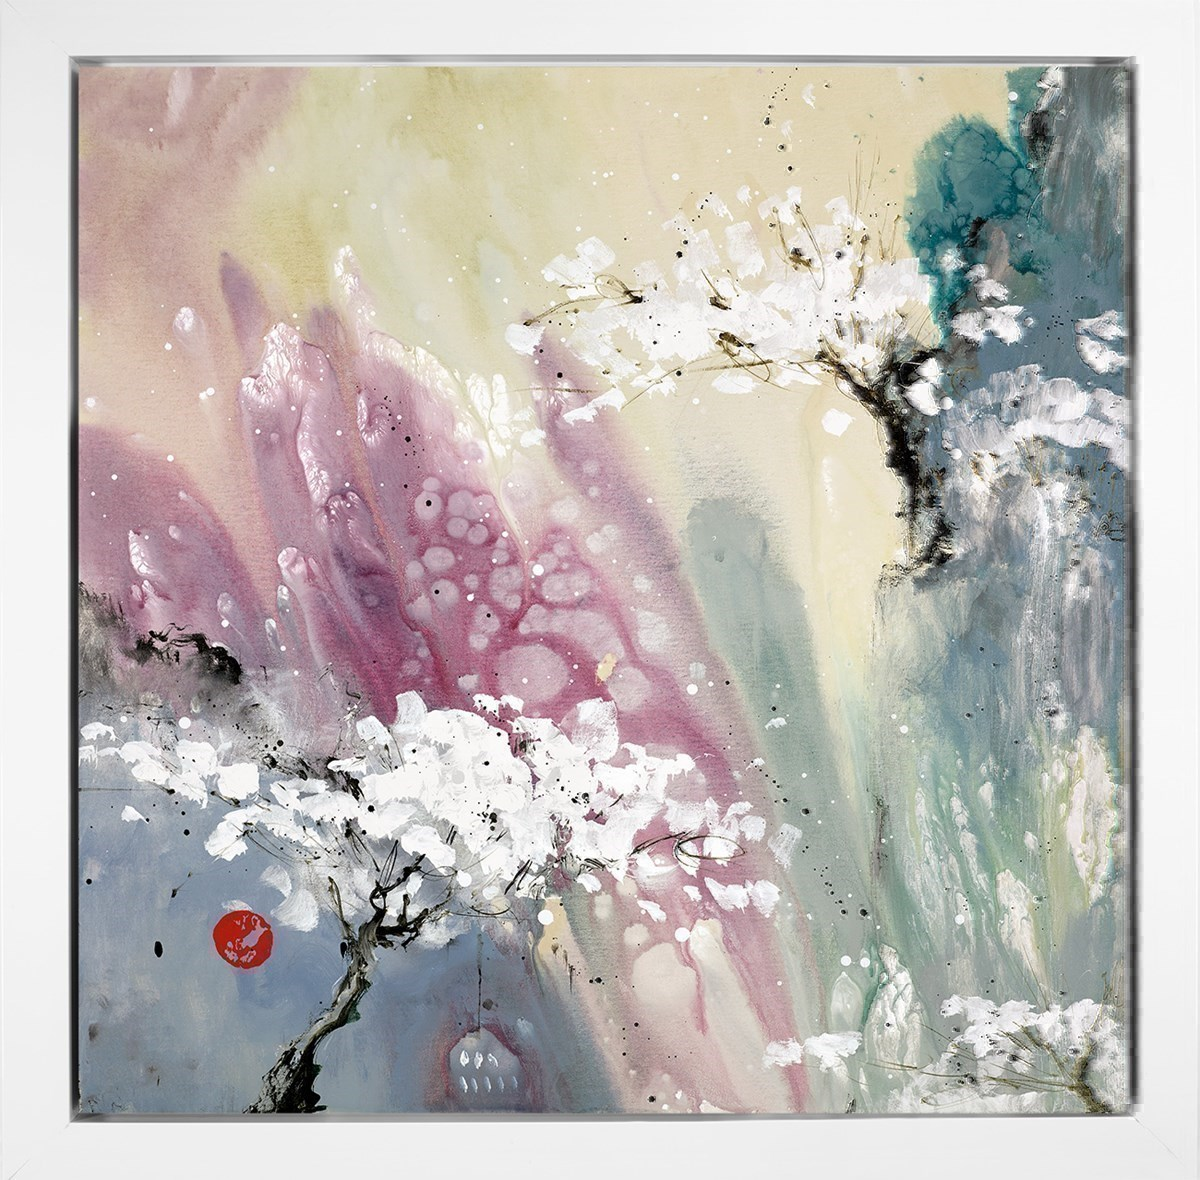 Love Poem I by Danielle O'Connor Akiyama - Glazed Limited Edition Box Canvas sized 22x22 inches. Available from Whitewall Galleries